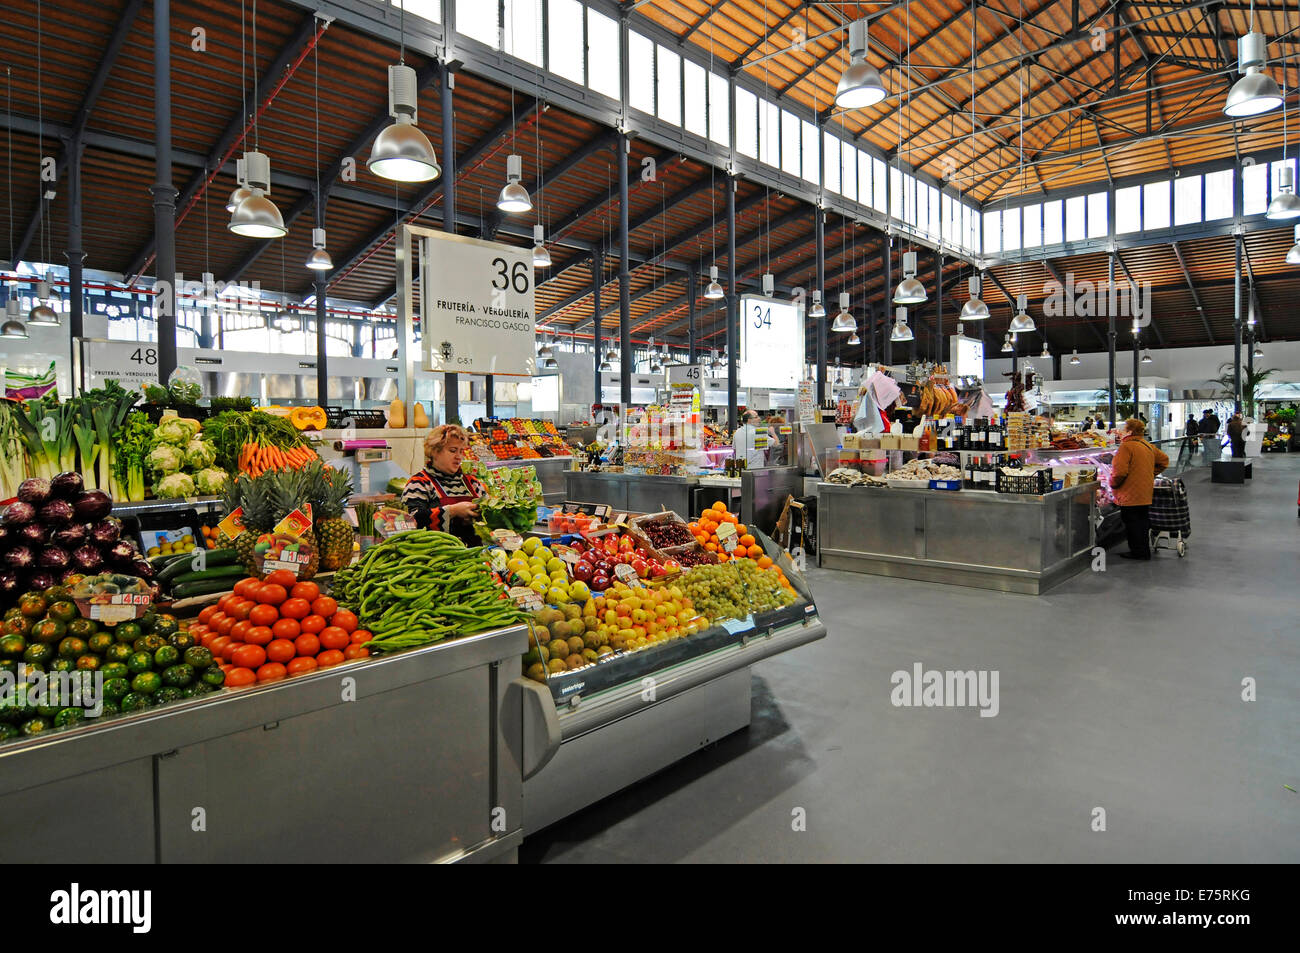 Mercado Central, indoor market, Almeria, Andalusia, Spain - Stock Image